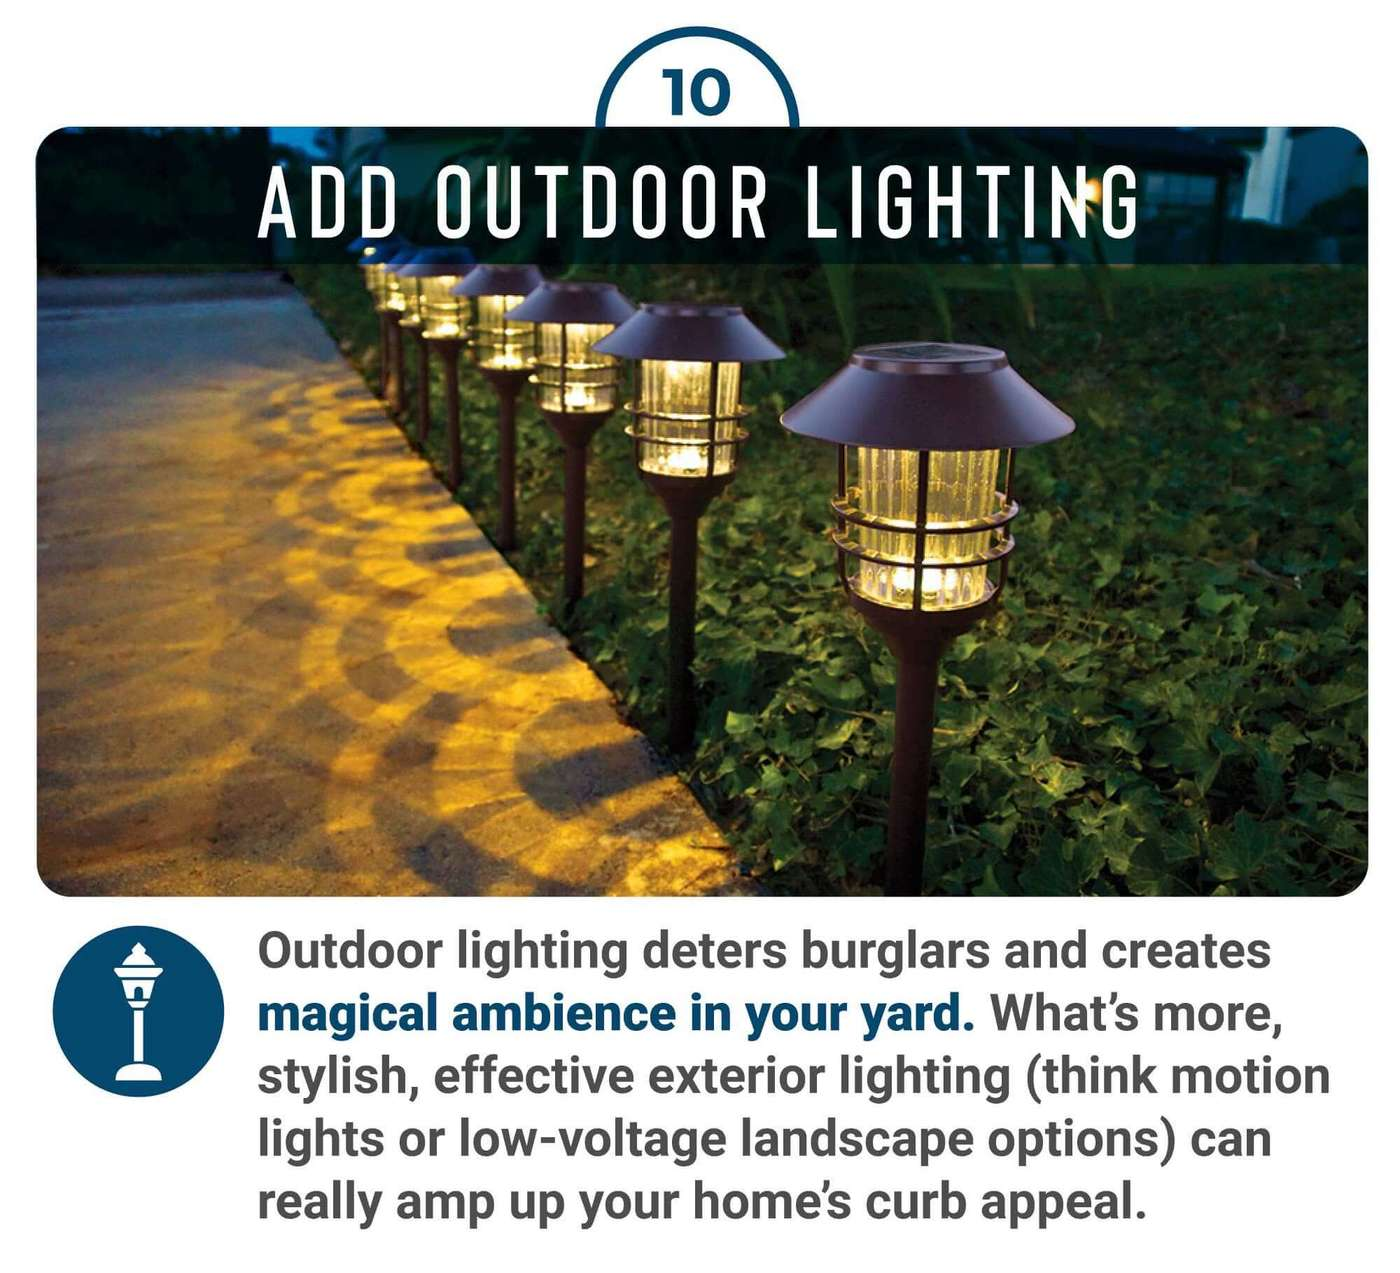 Add outdoor lighting to boost home value